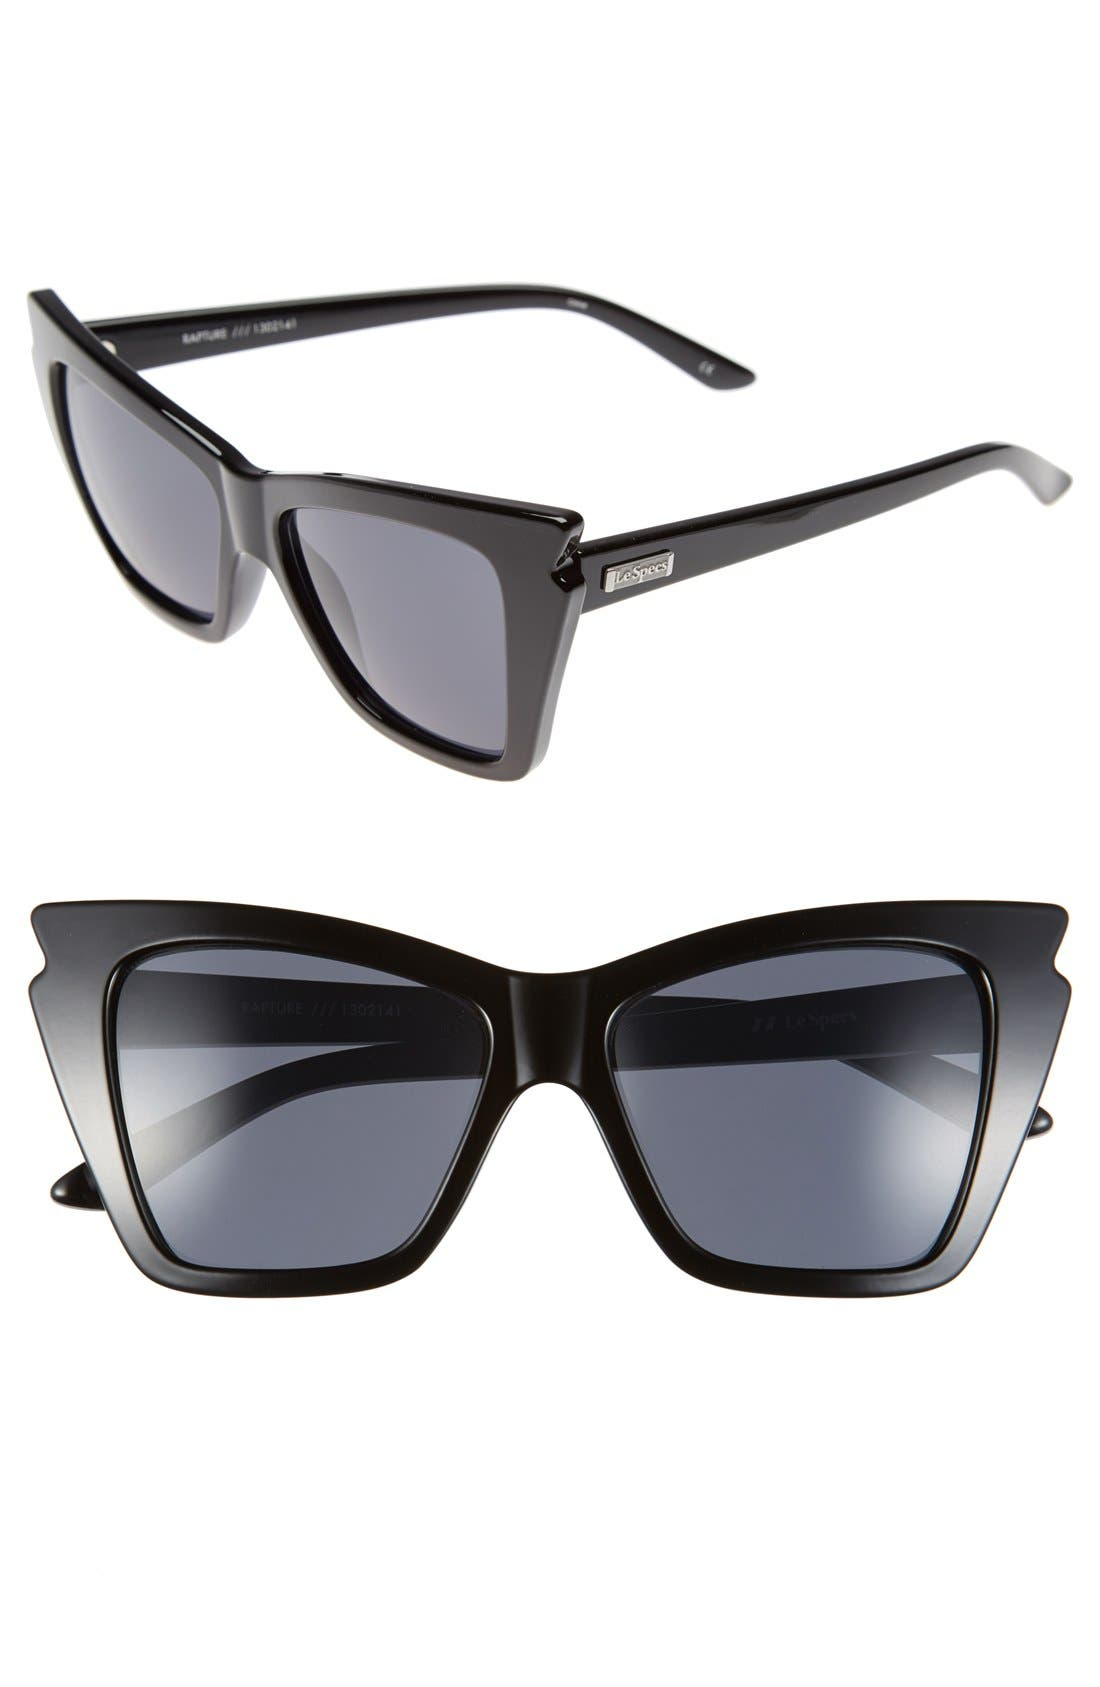 'Rapture' 55mm Bat Wing Sunglasses,                             Main thumbnail 1, color,                             Black